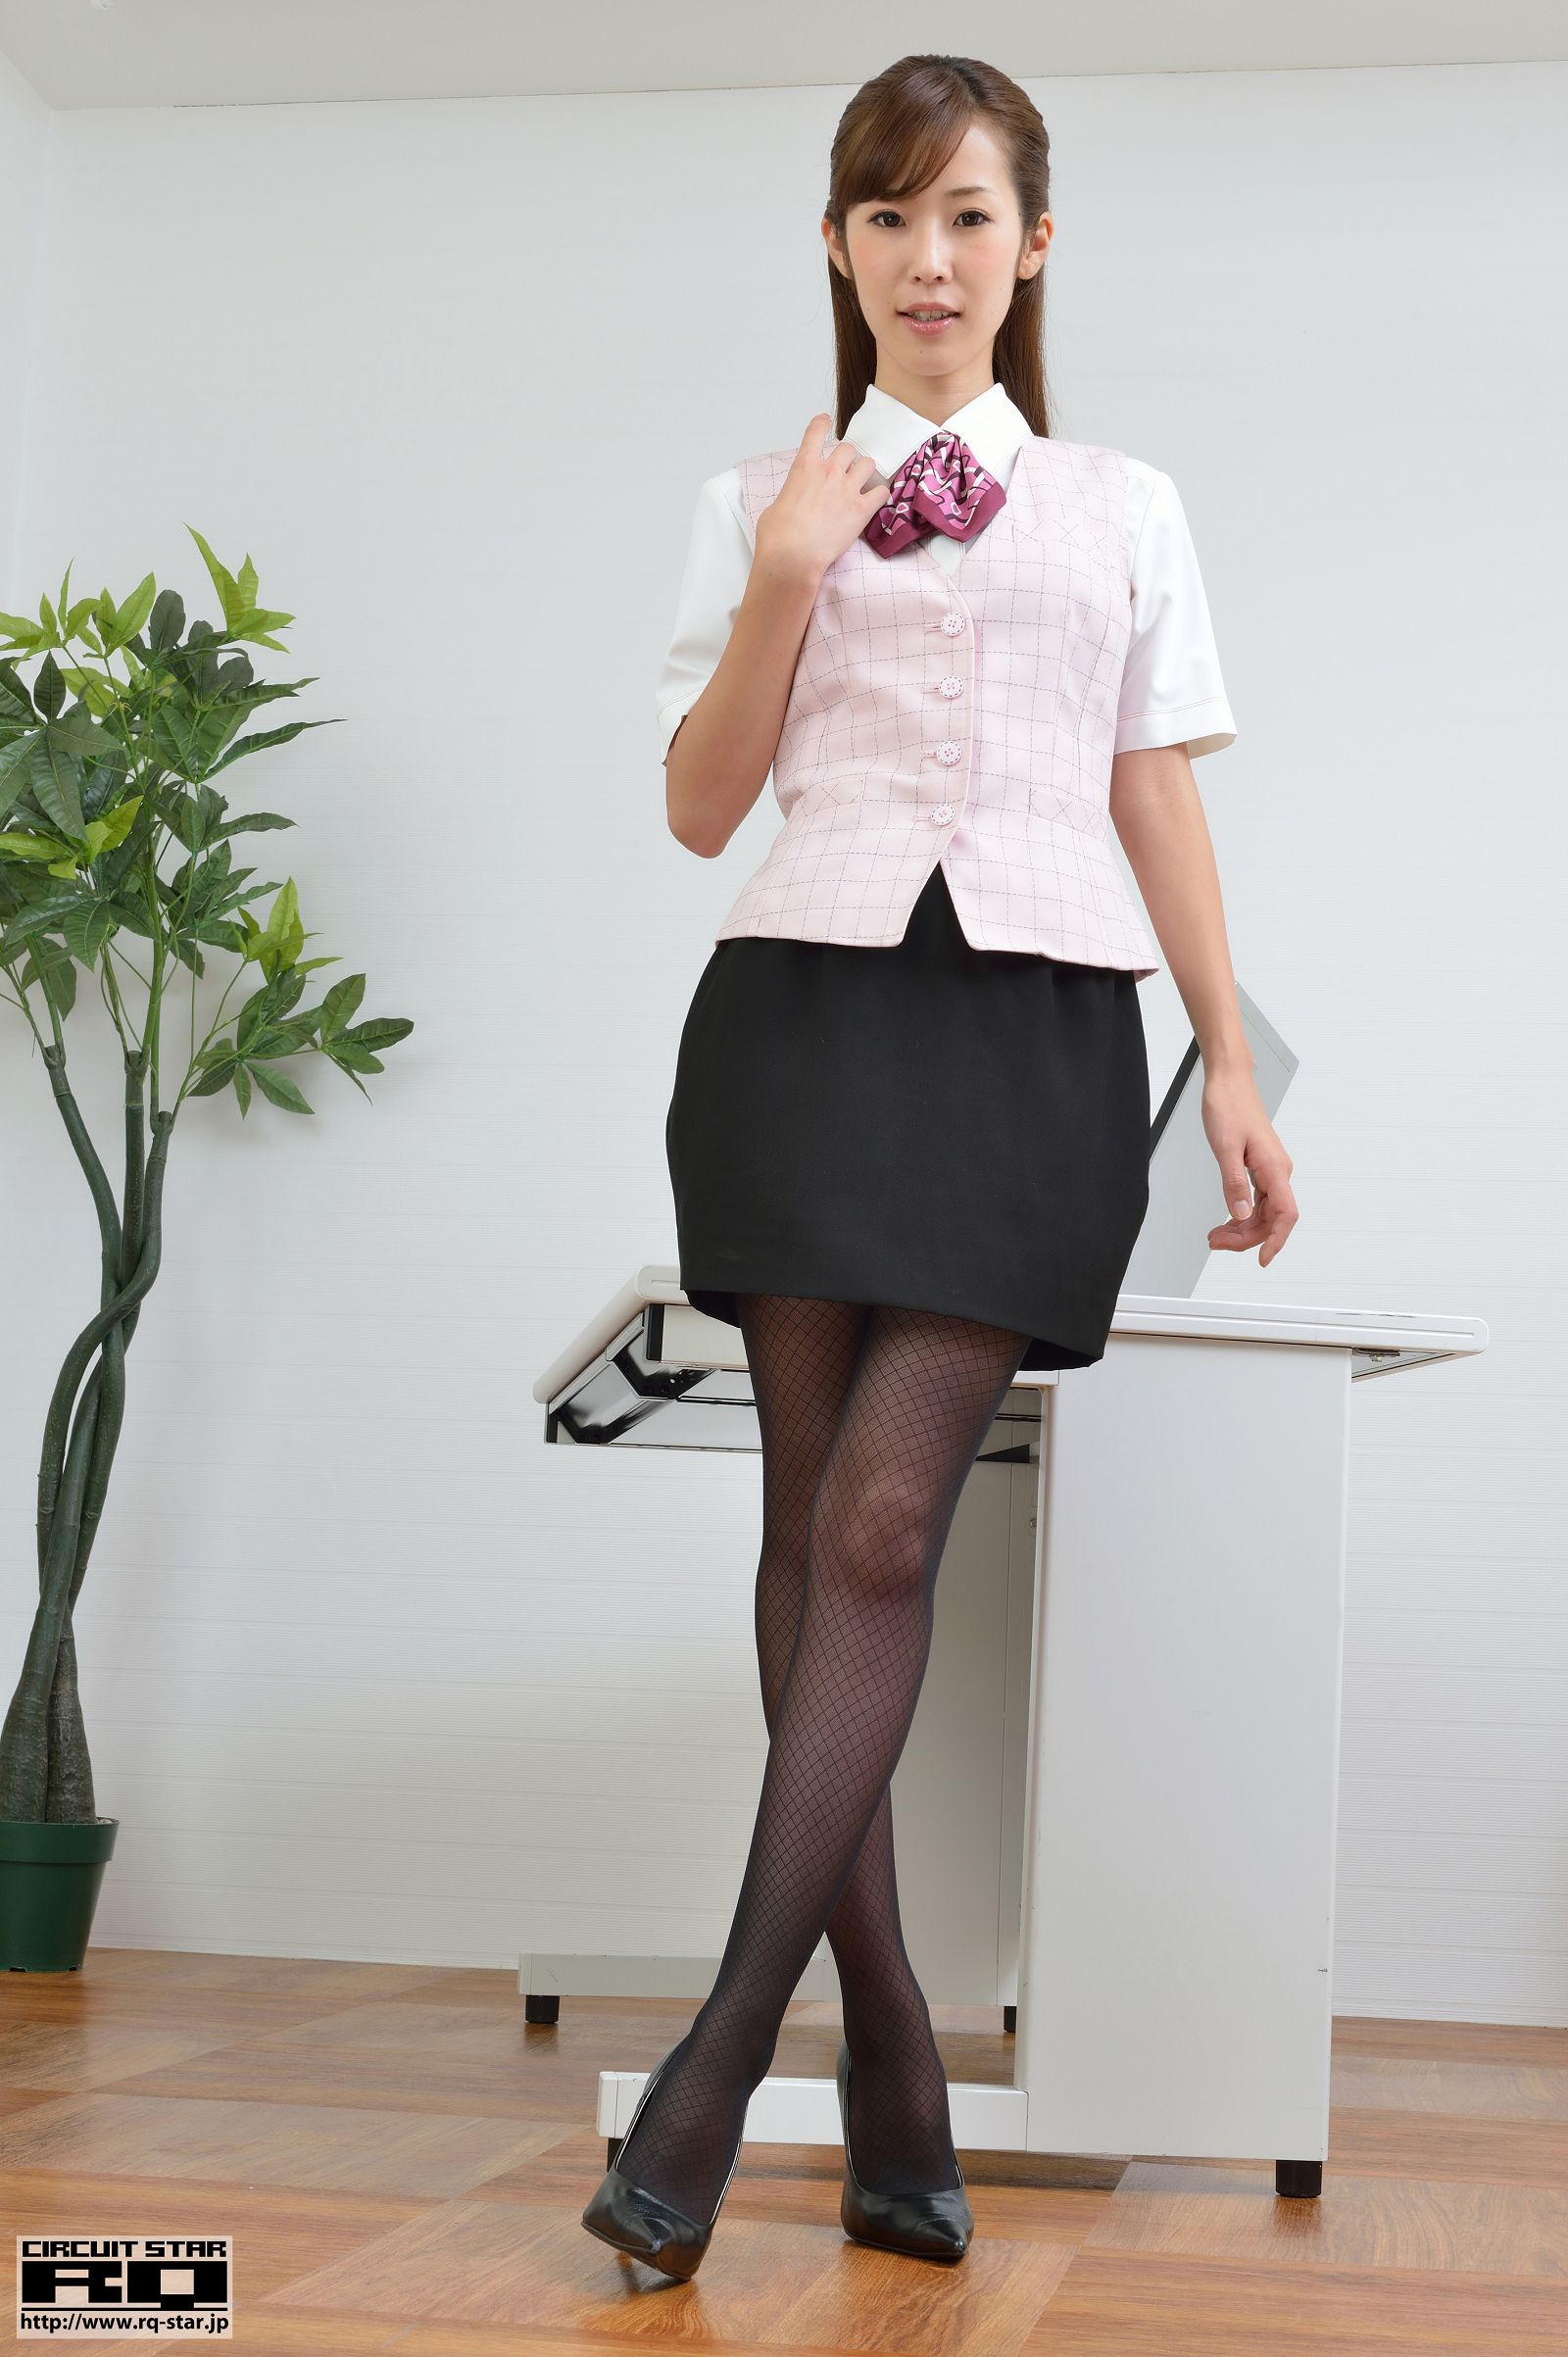 [RQ STAR美女] NO.01007 Nao Kitamura 北村奈緒 Office Lady[88P] RQ STAR 第1张